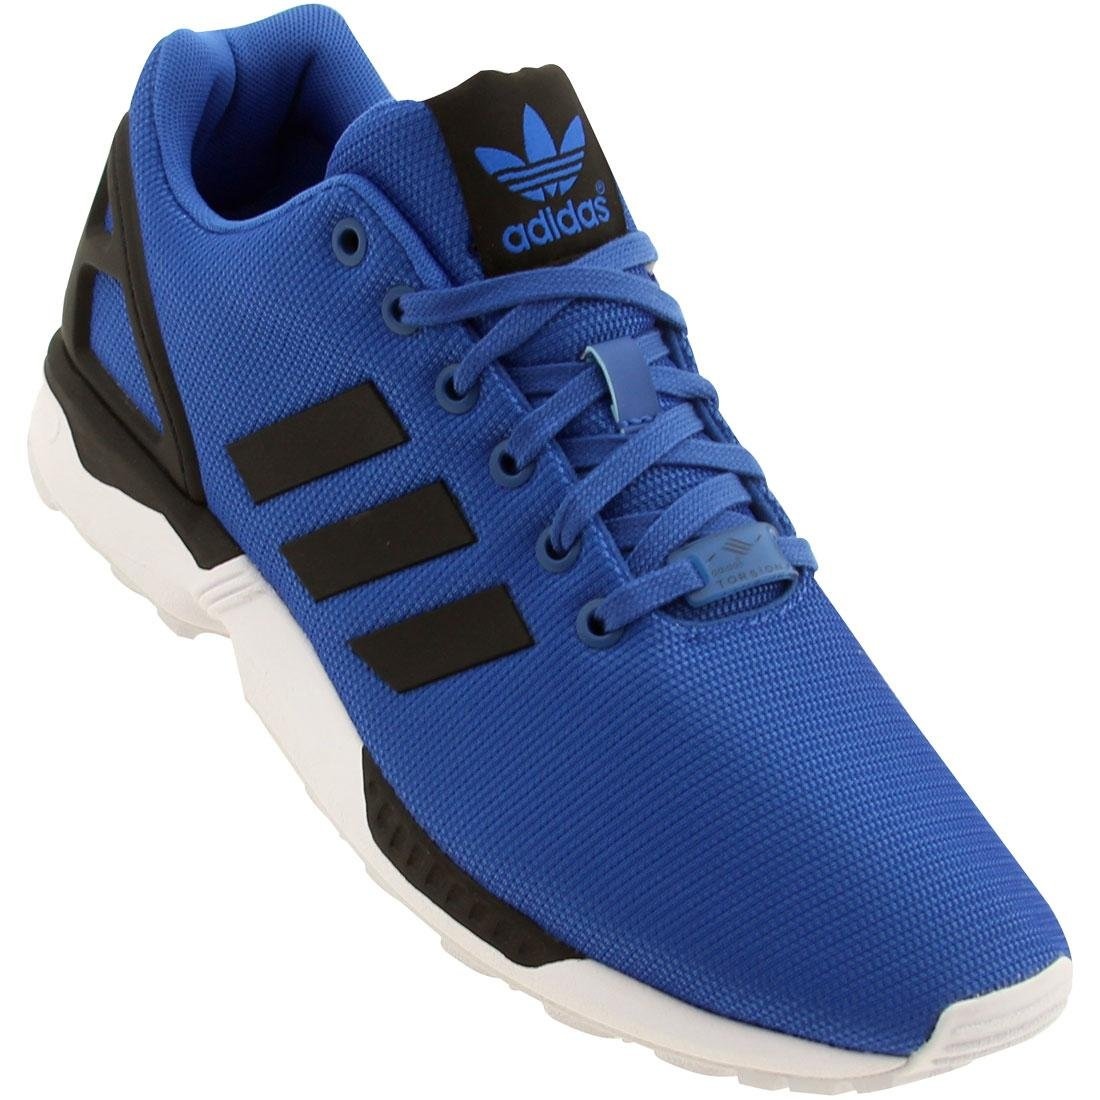 on sale d8a88 57582 adidas Men's M21328 ZX Flux Running Shoes